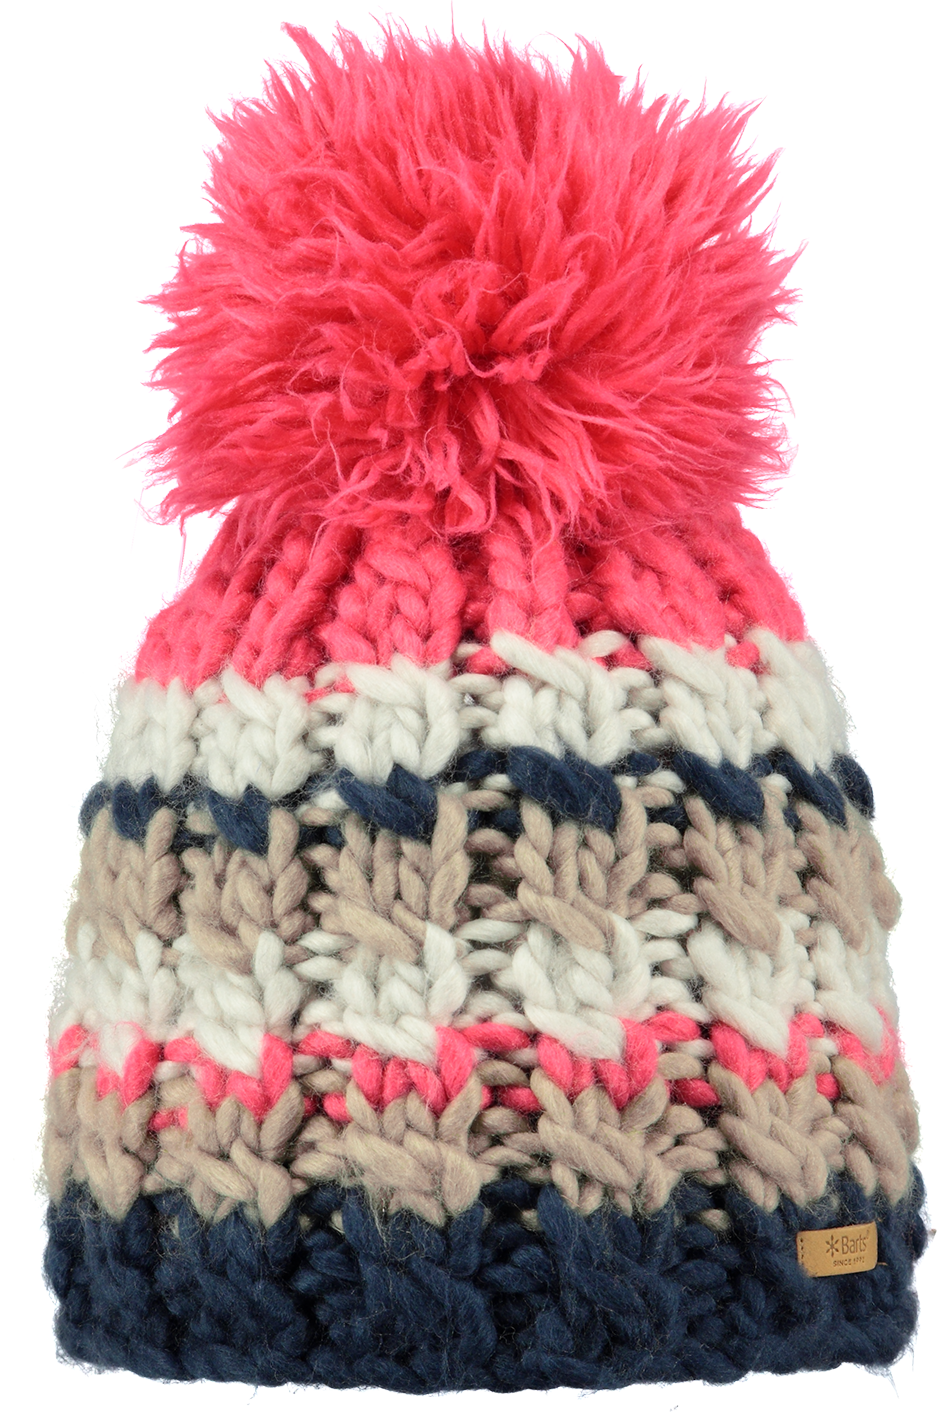 75dbbfb686dc0 The Barts Feather beanie features super thick yarn and a mega pom. What  feels more like winter